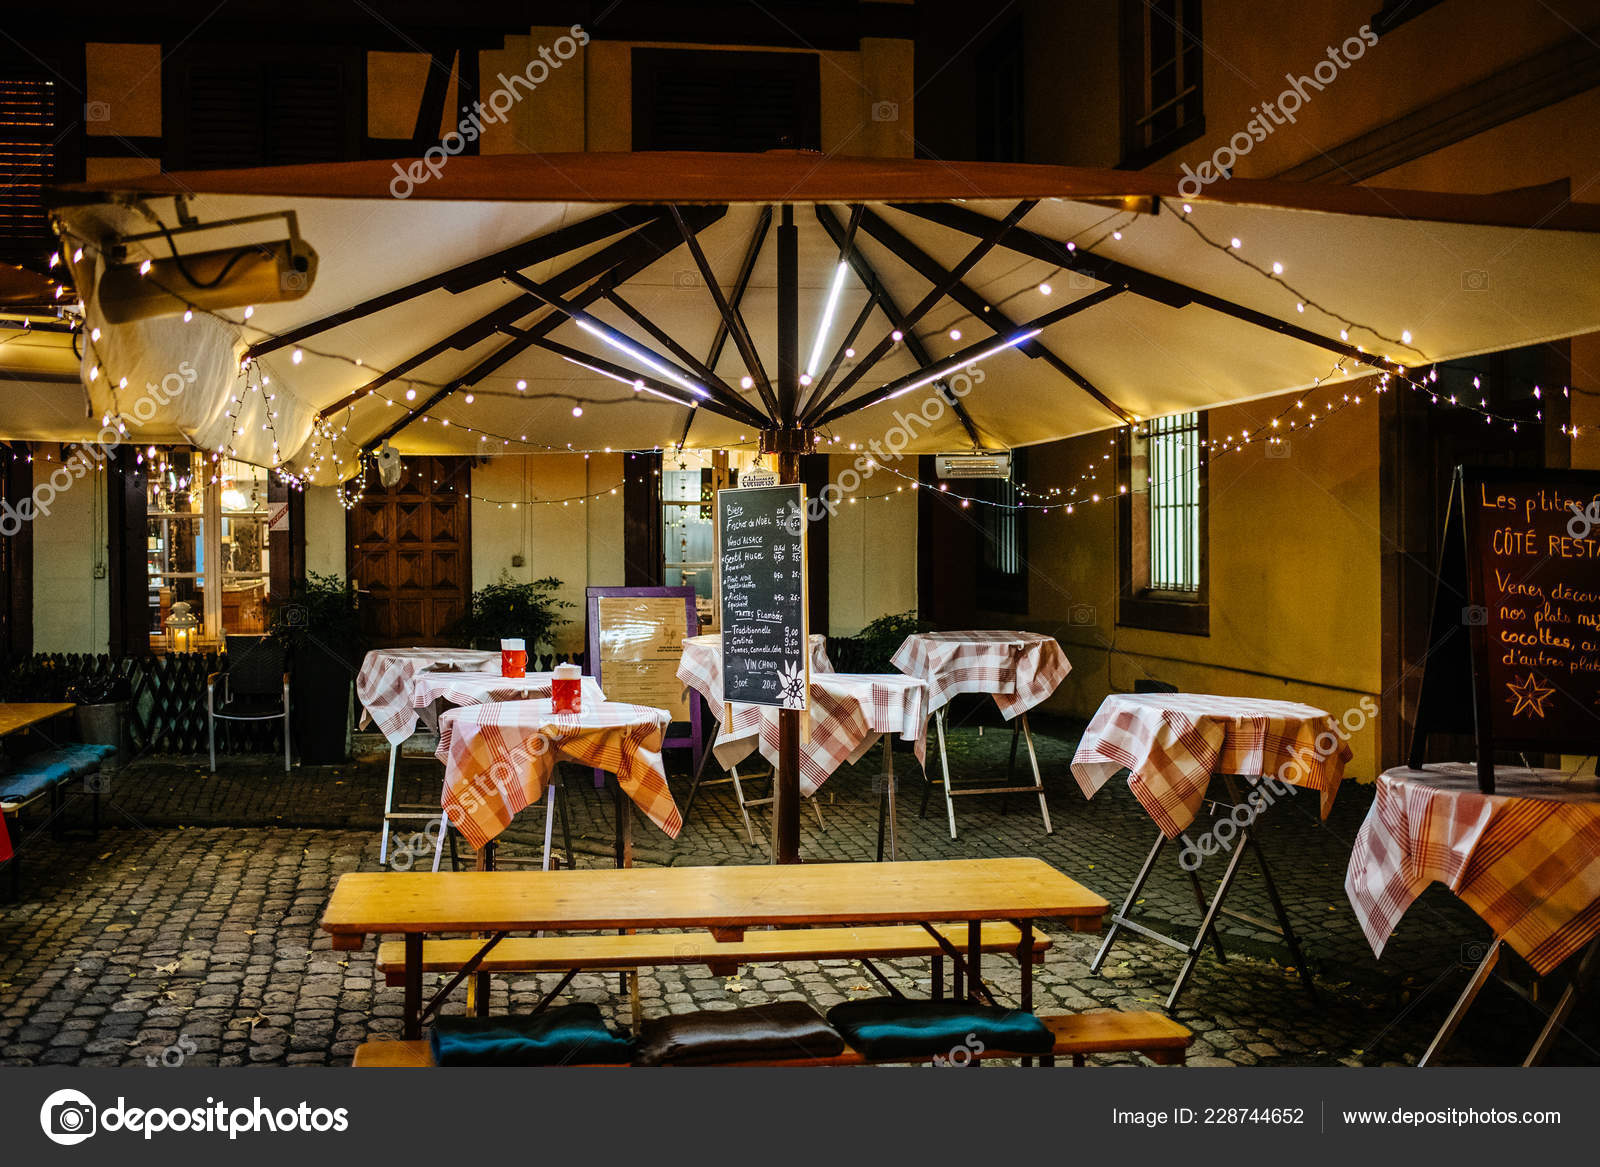 Outdoor Terrace With Umbrella Cafe Restaurant And Lights Stock Editorial Photo C Ifeelstock 228744652